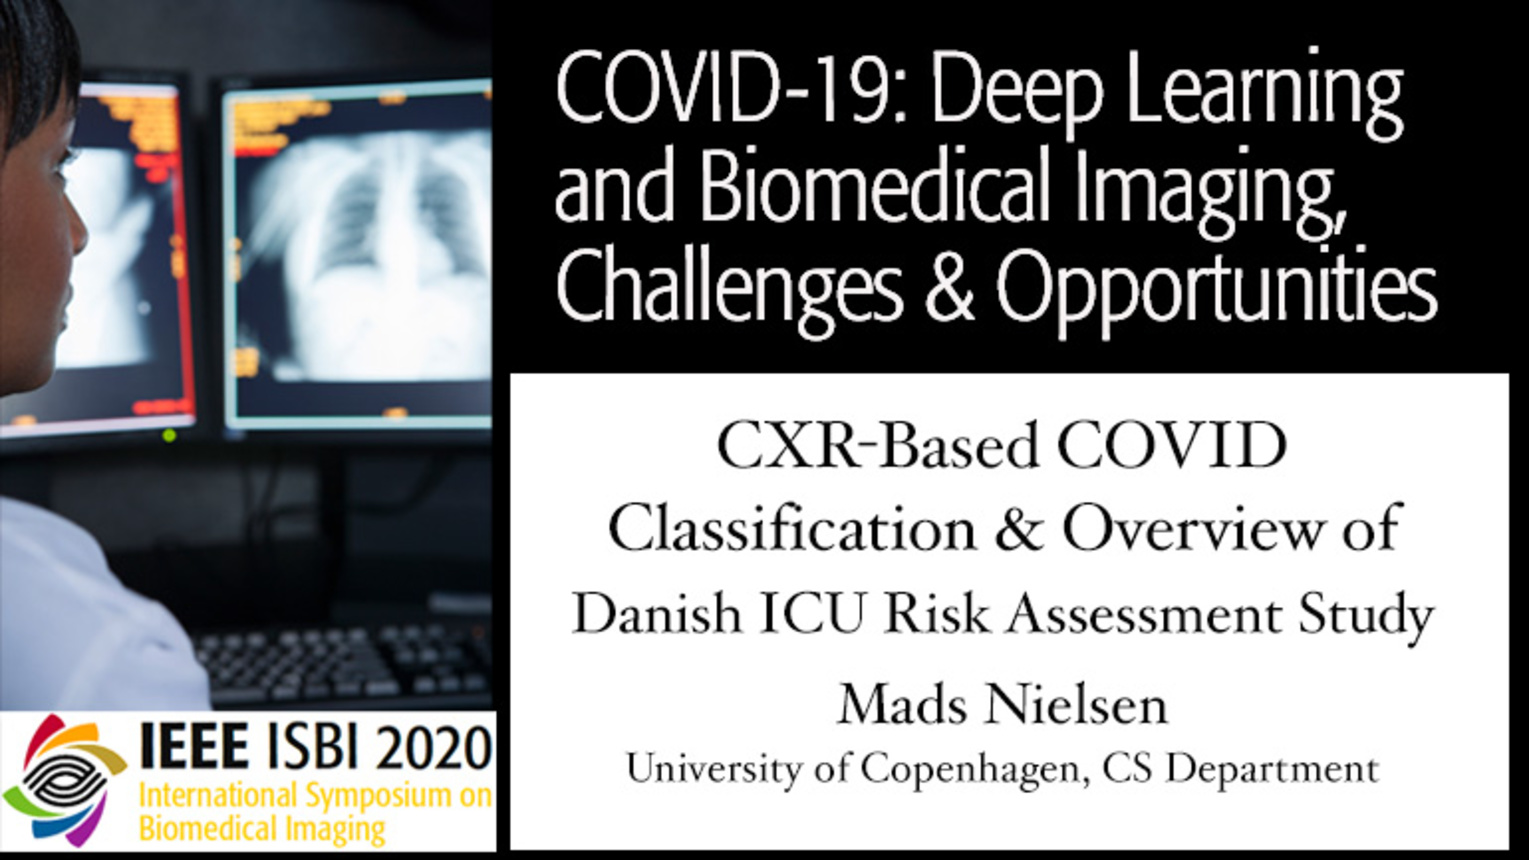 Mads Nielsen - COVID-19, Deep Learning and Biomedical Imaging Panel